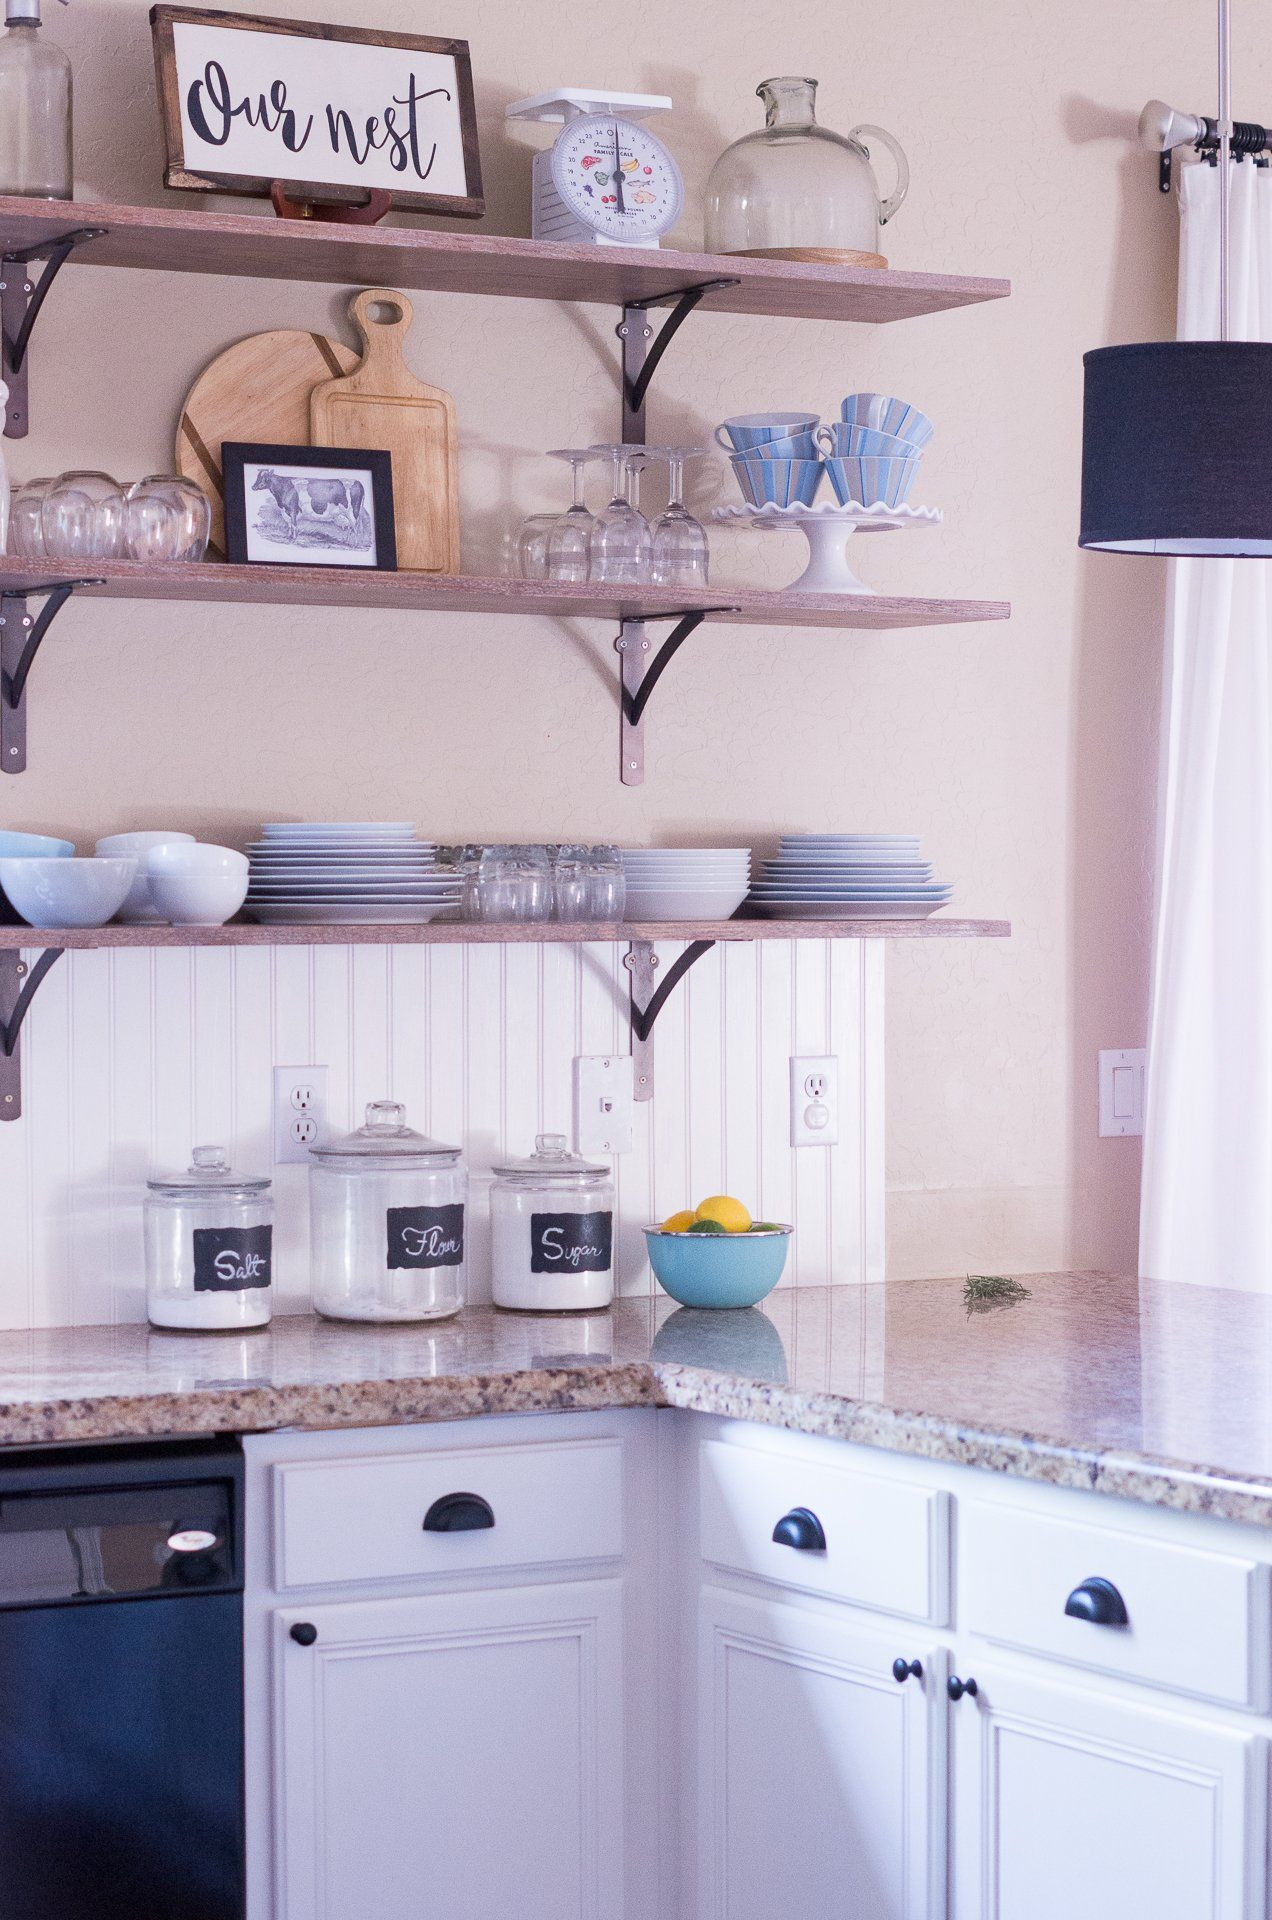 6 creative storage solutions for a kitchen with no upper cabinets in 2020 house design kitchen on farmhouse kitchen no upper cabinets id=32786